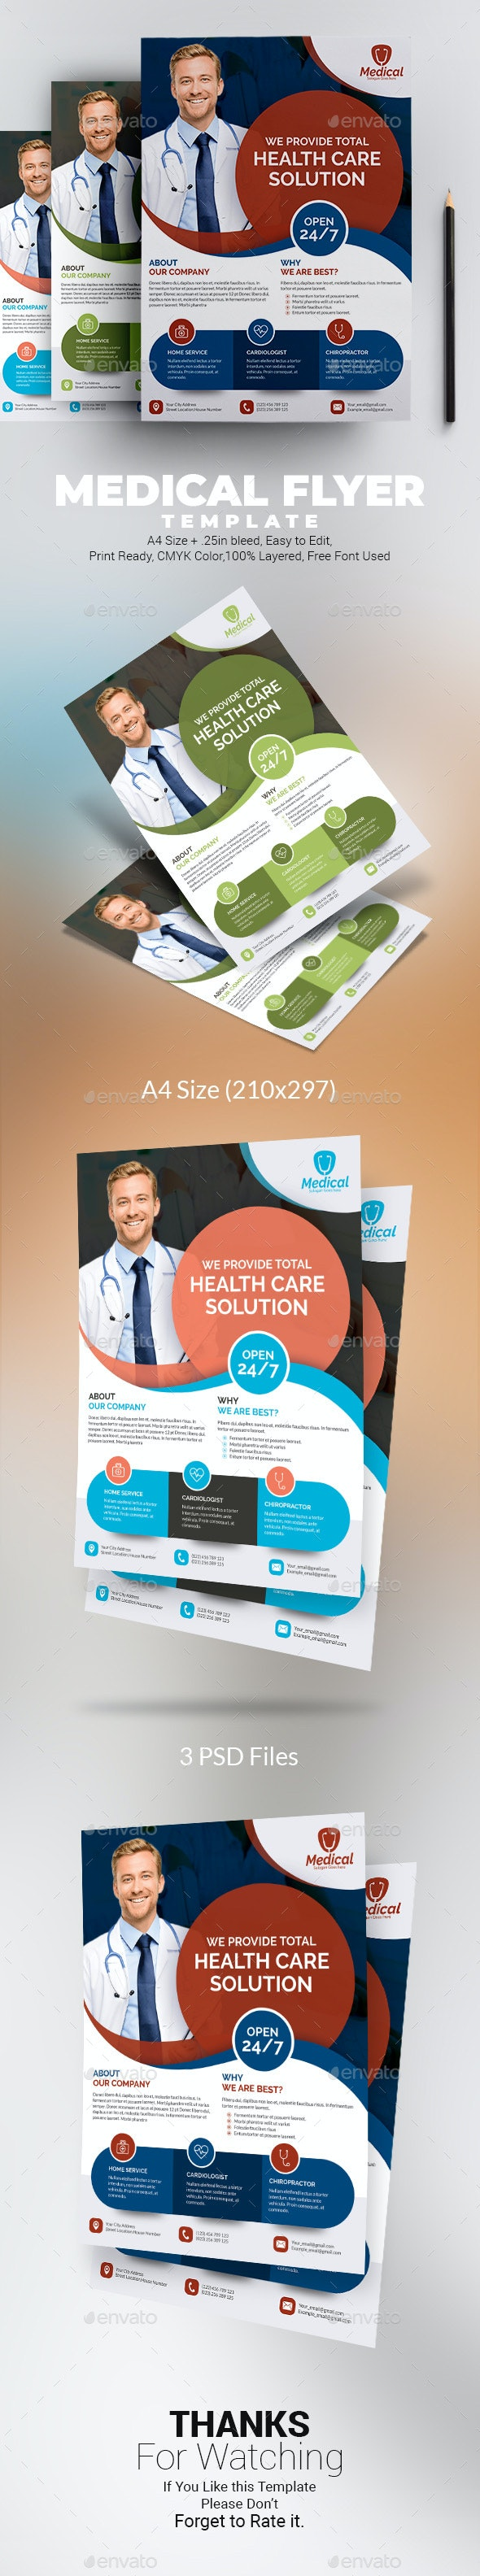 Medical Flyer Template - Corporate Flyers